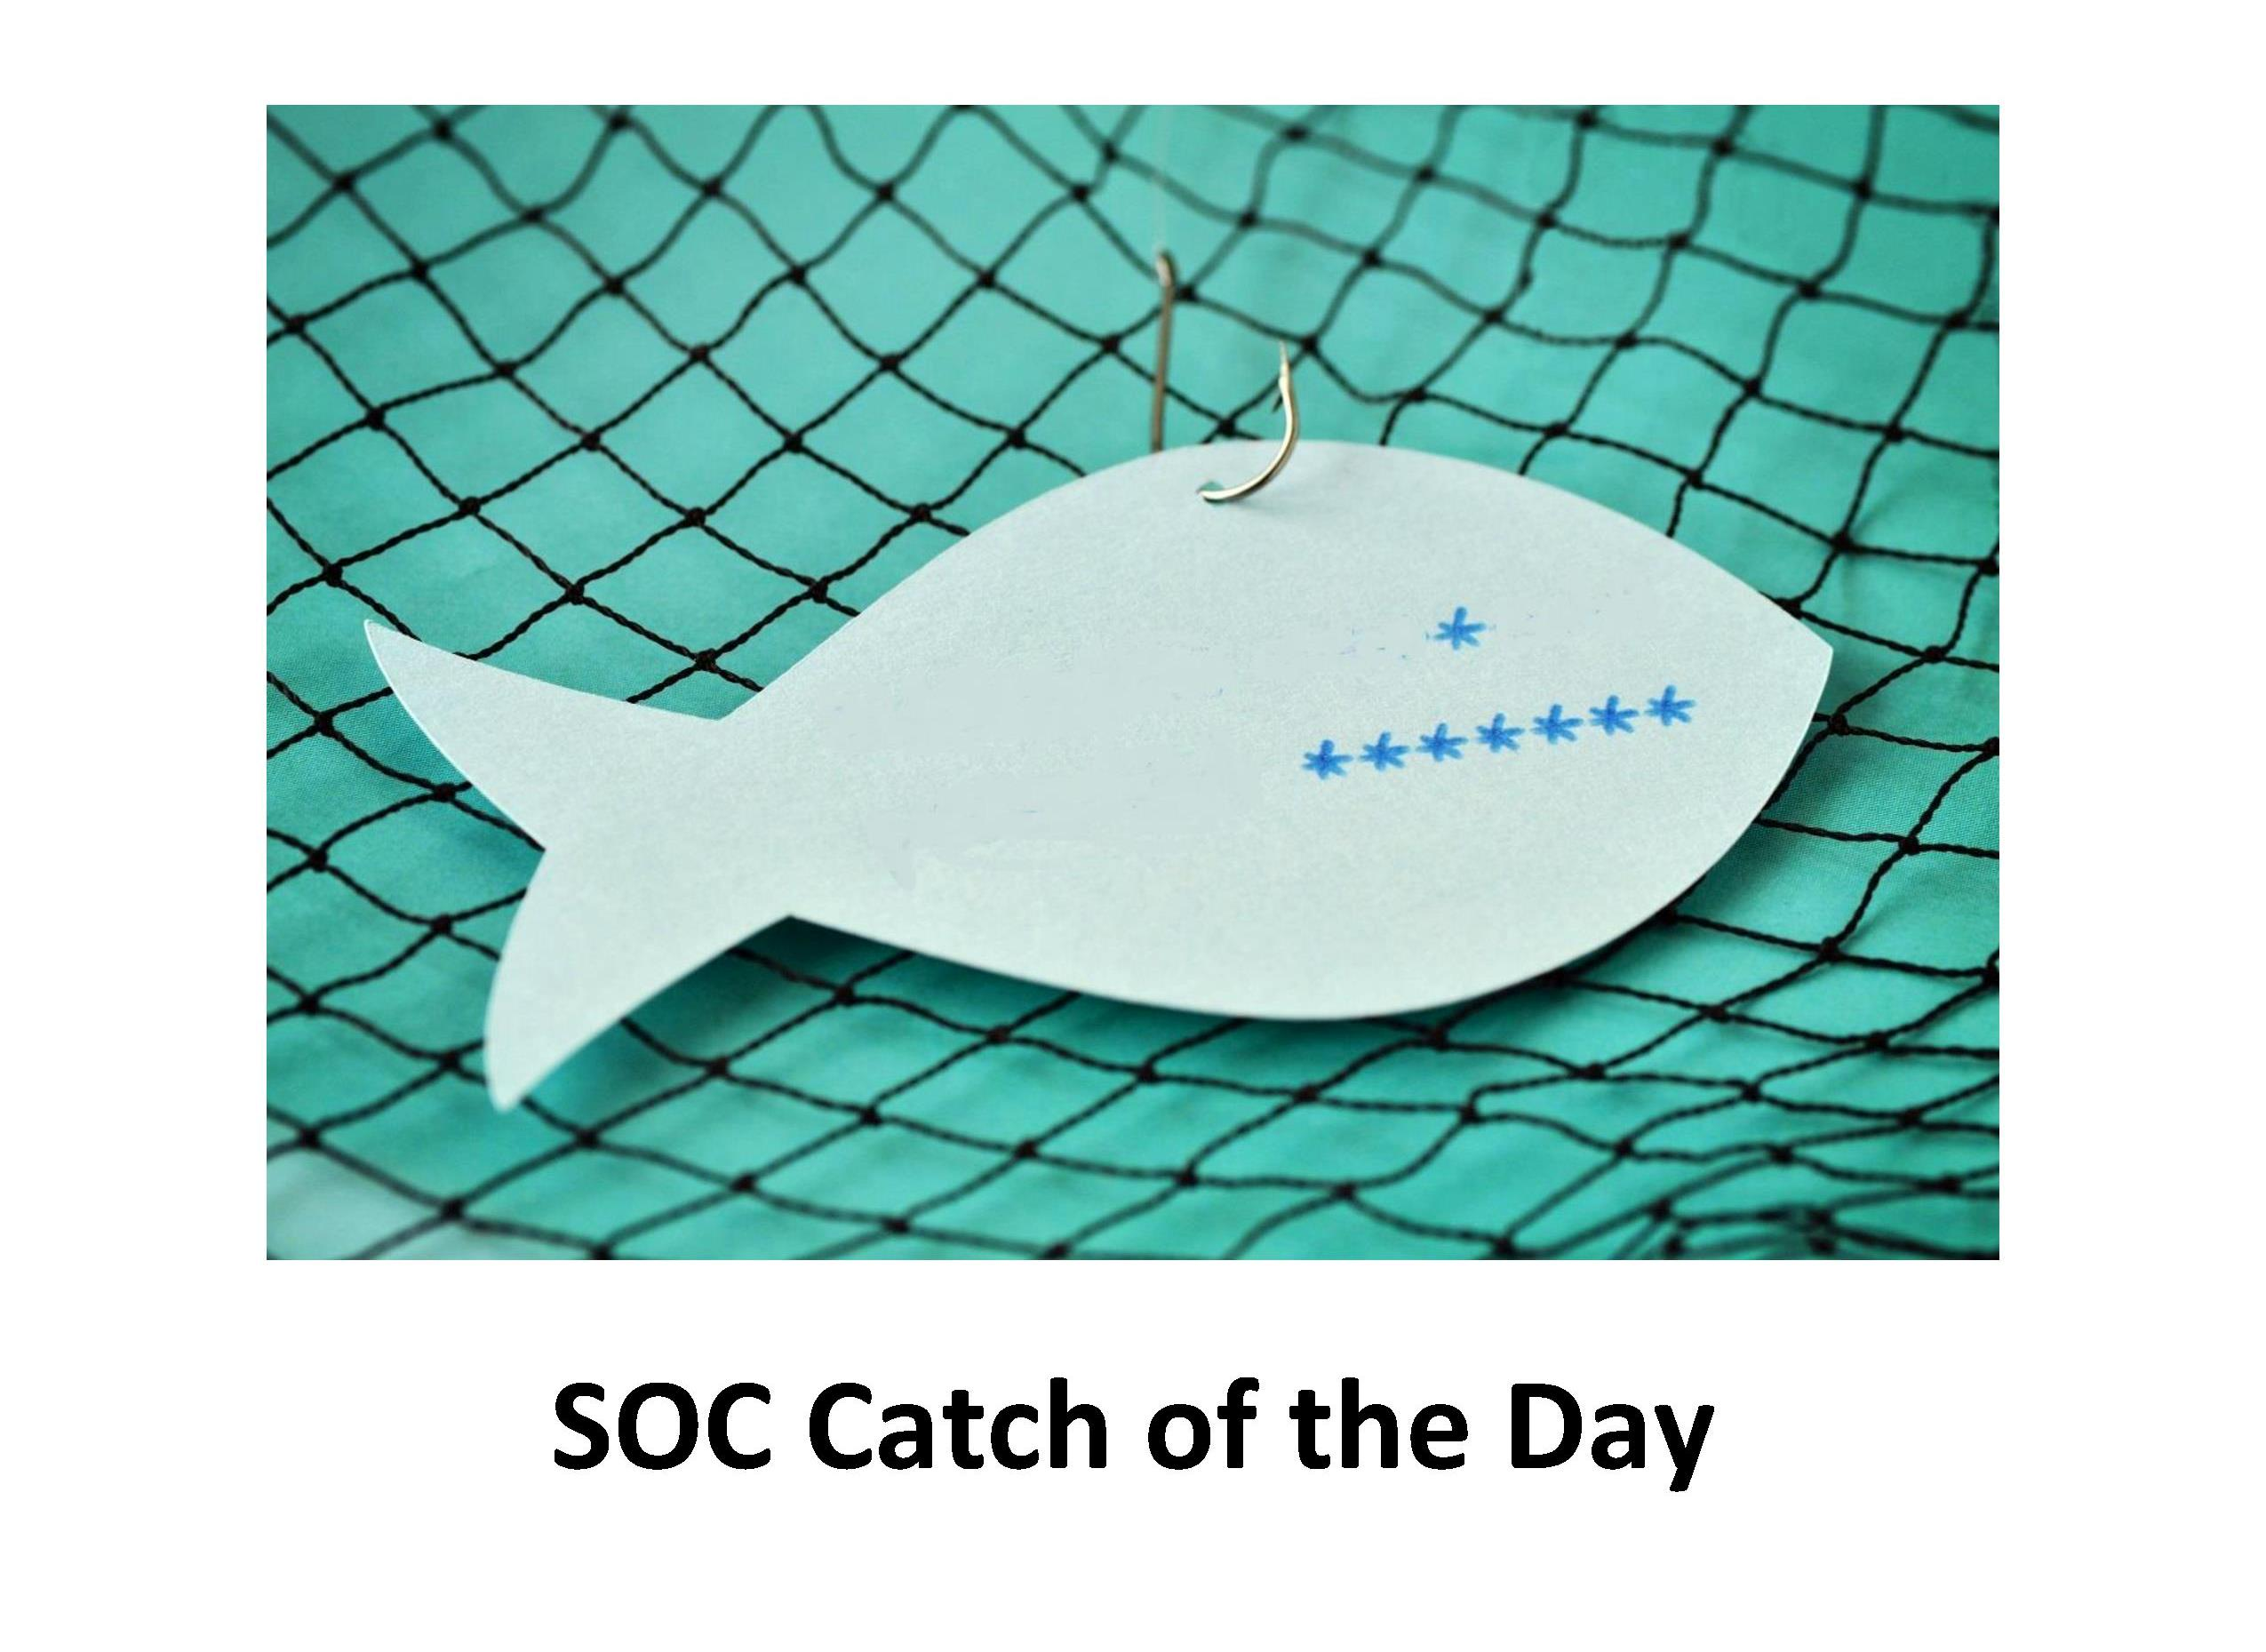 Netsurion SOC Catch of the Day